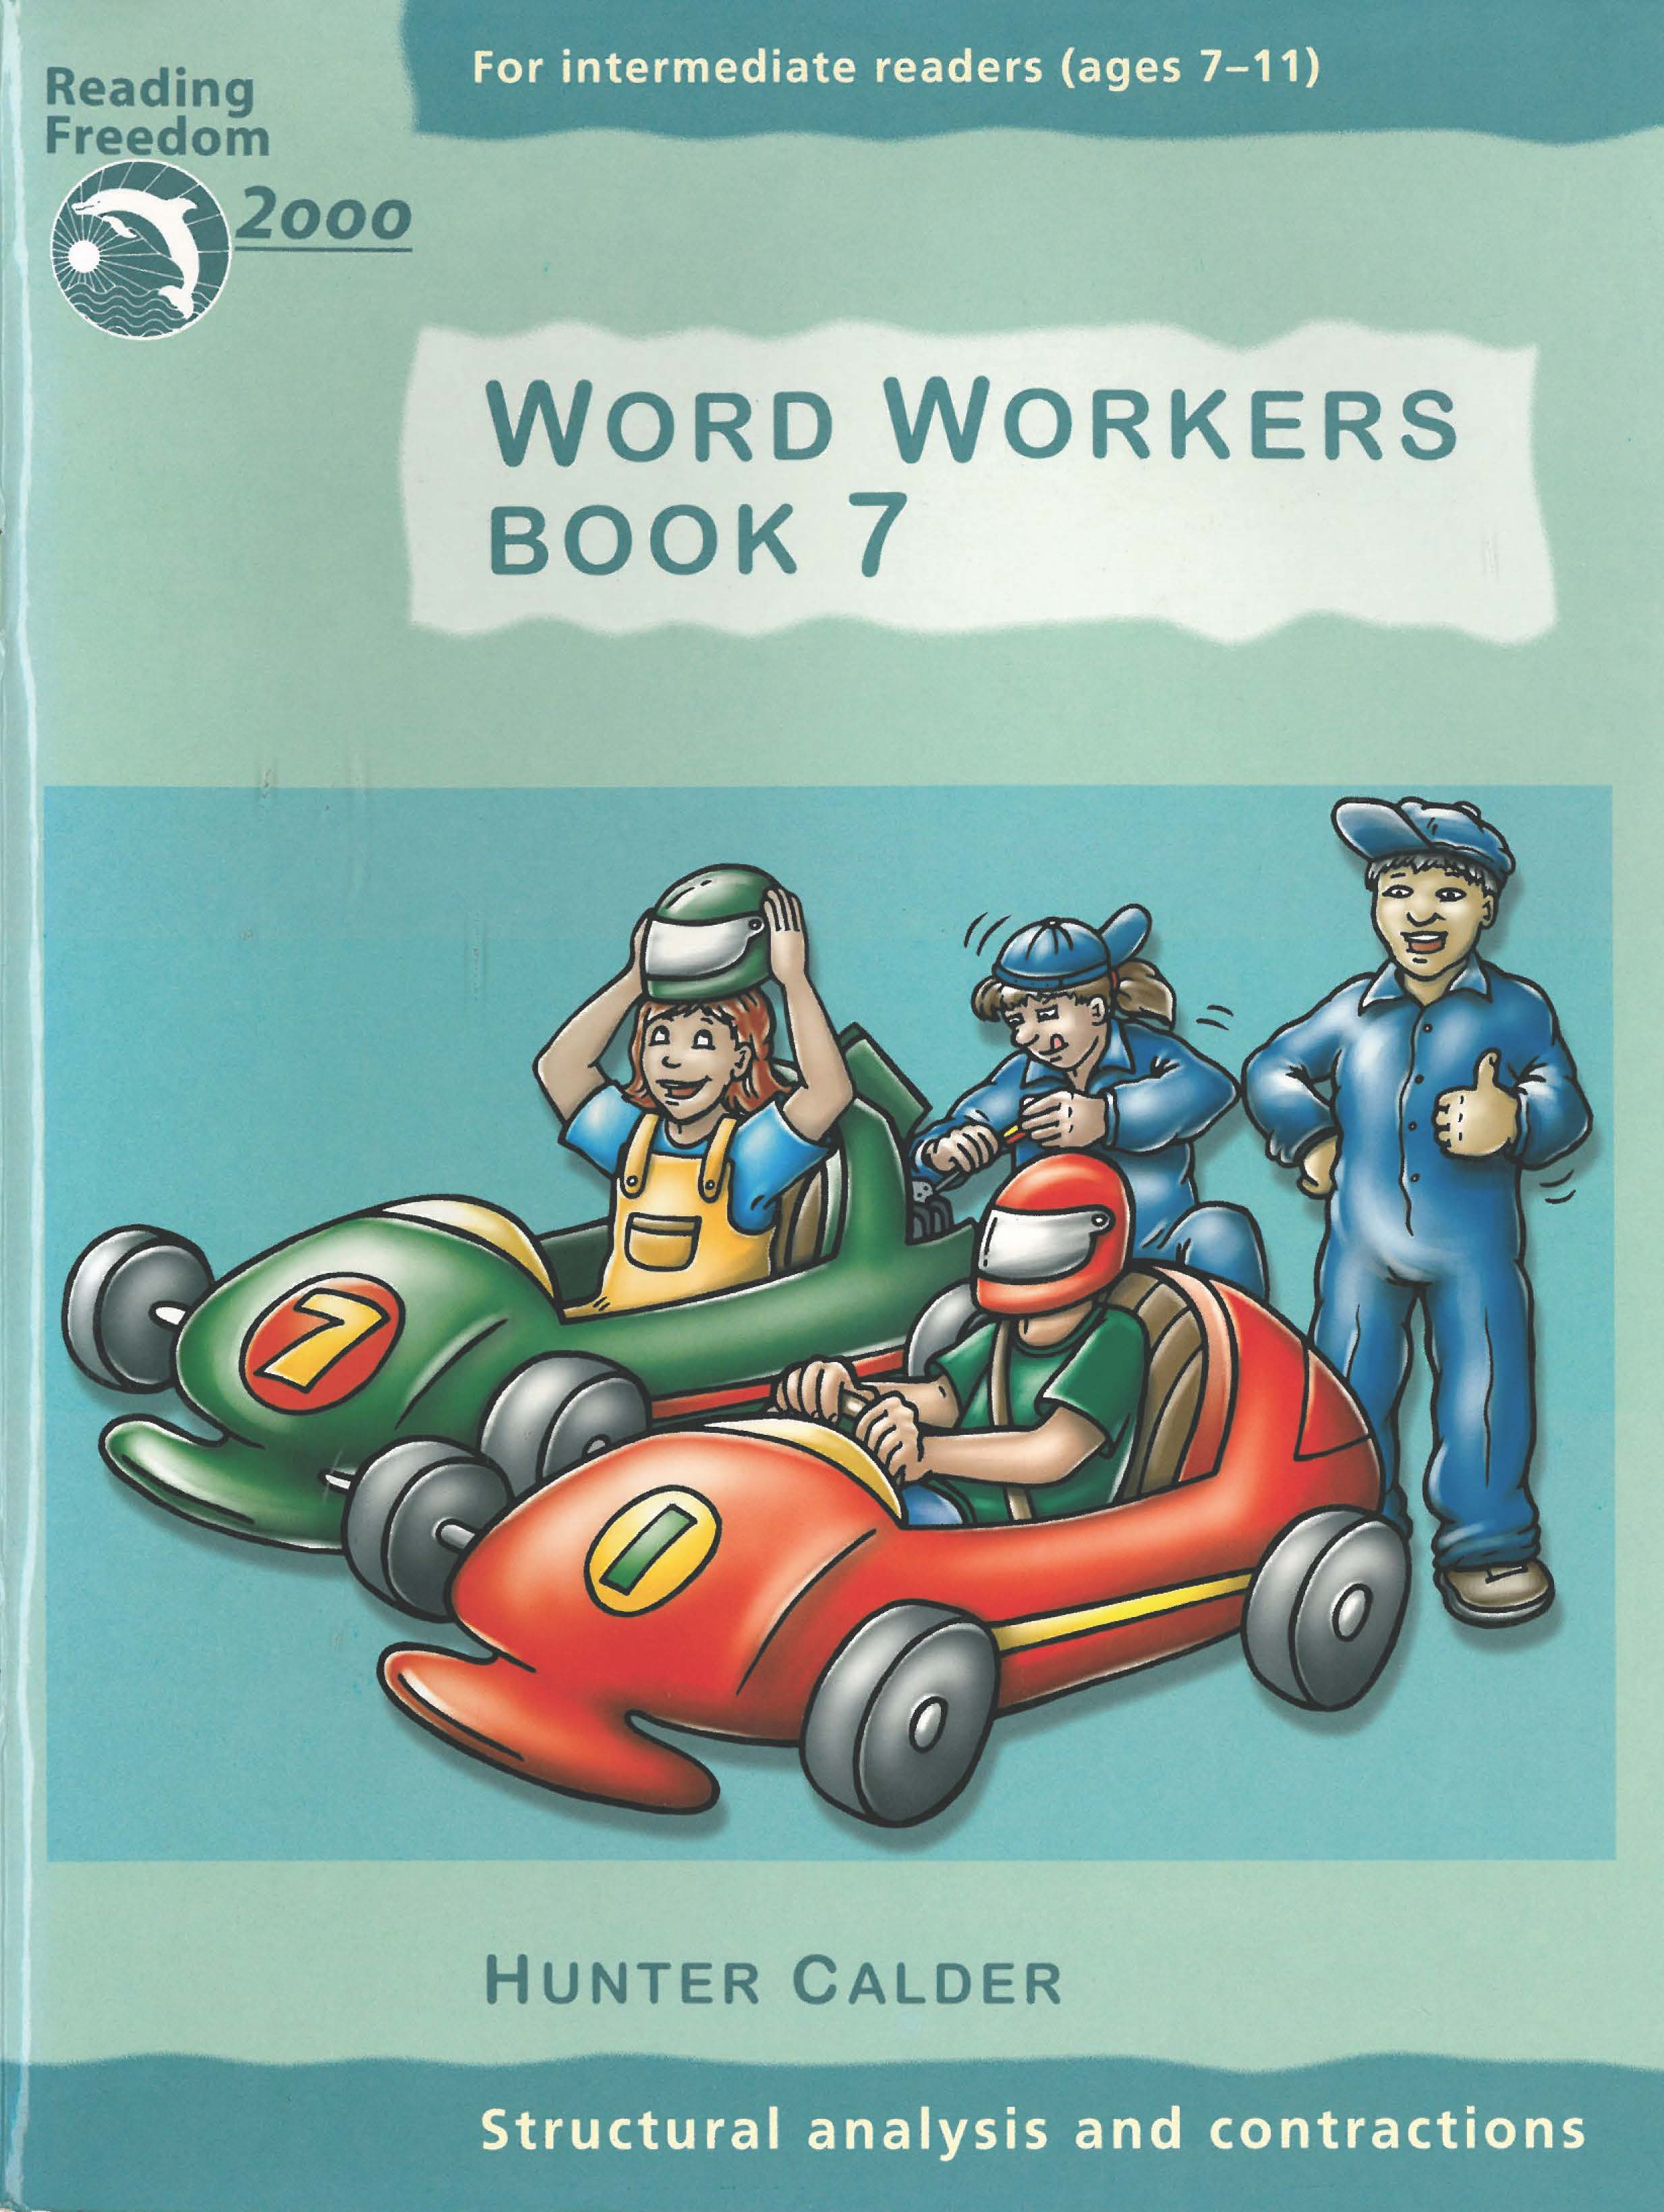 Reading Freedom Word Workers Book 7: Structural analysis and contractions